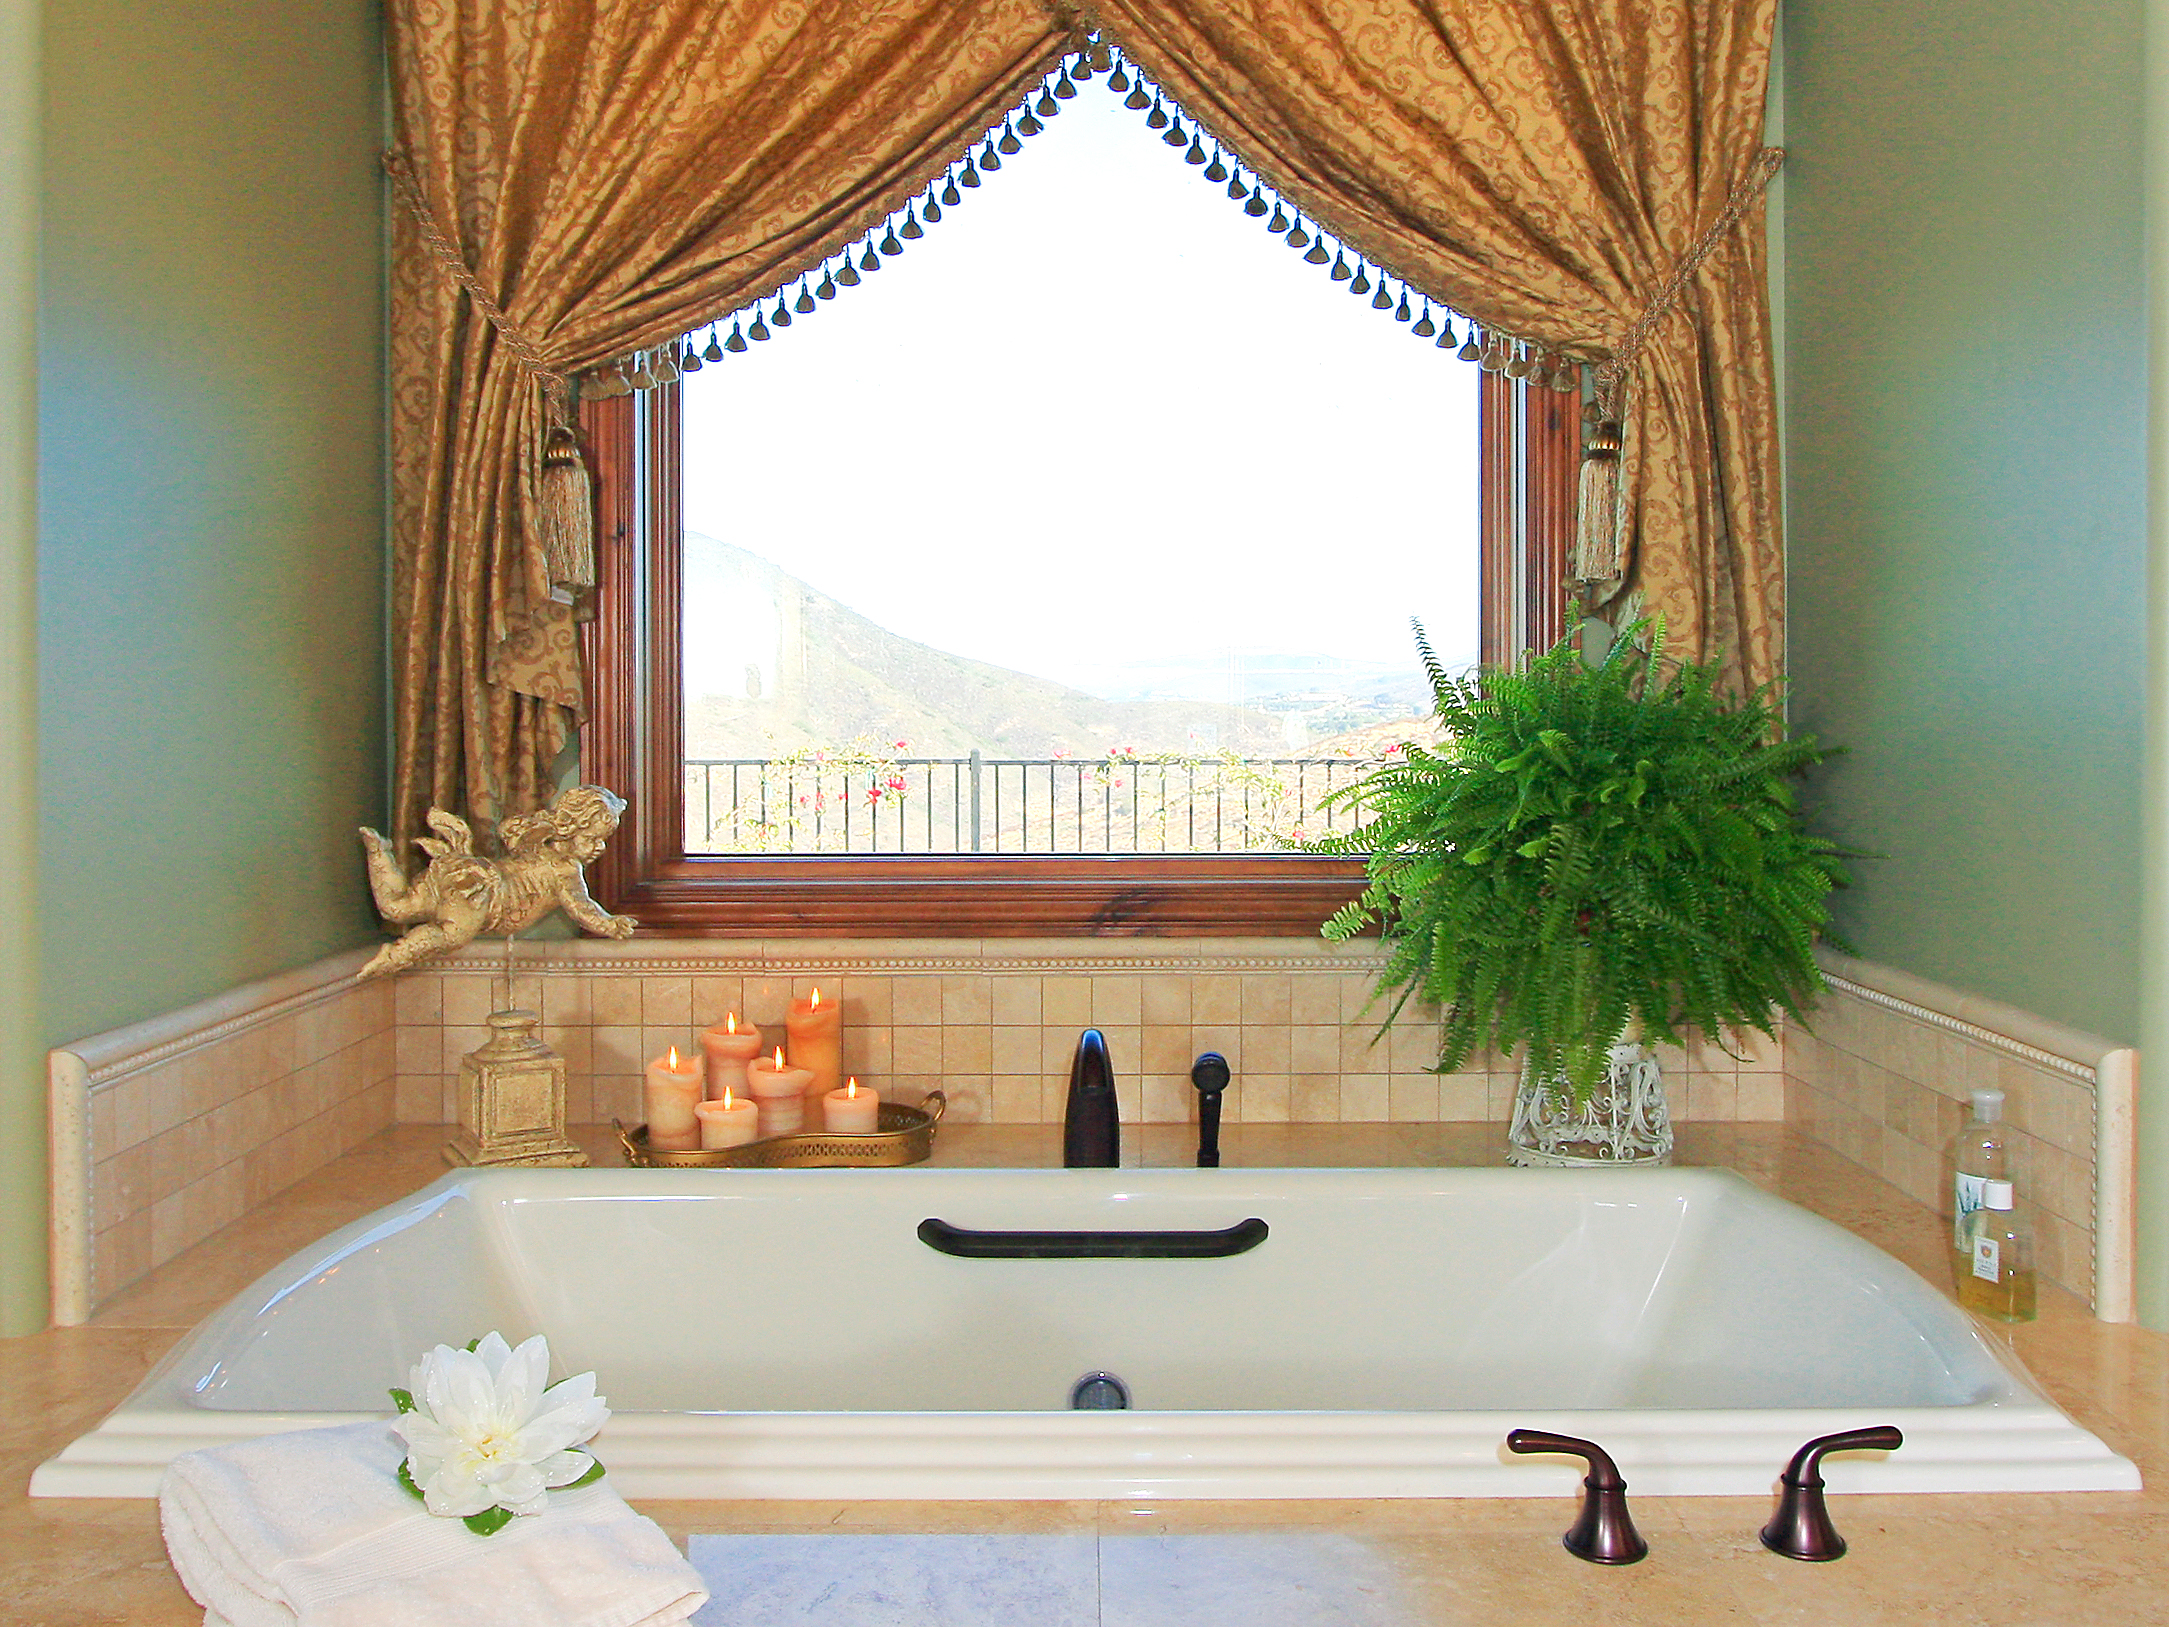 Bathroom curtain ideas - Ideas Bathroom Window Curtains